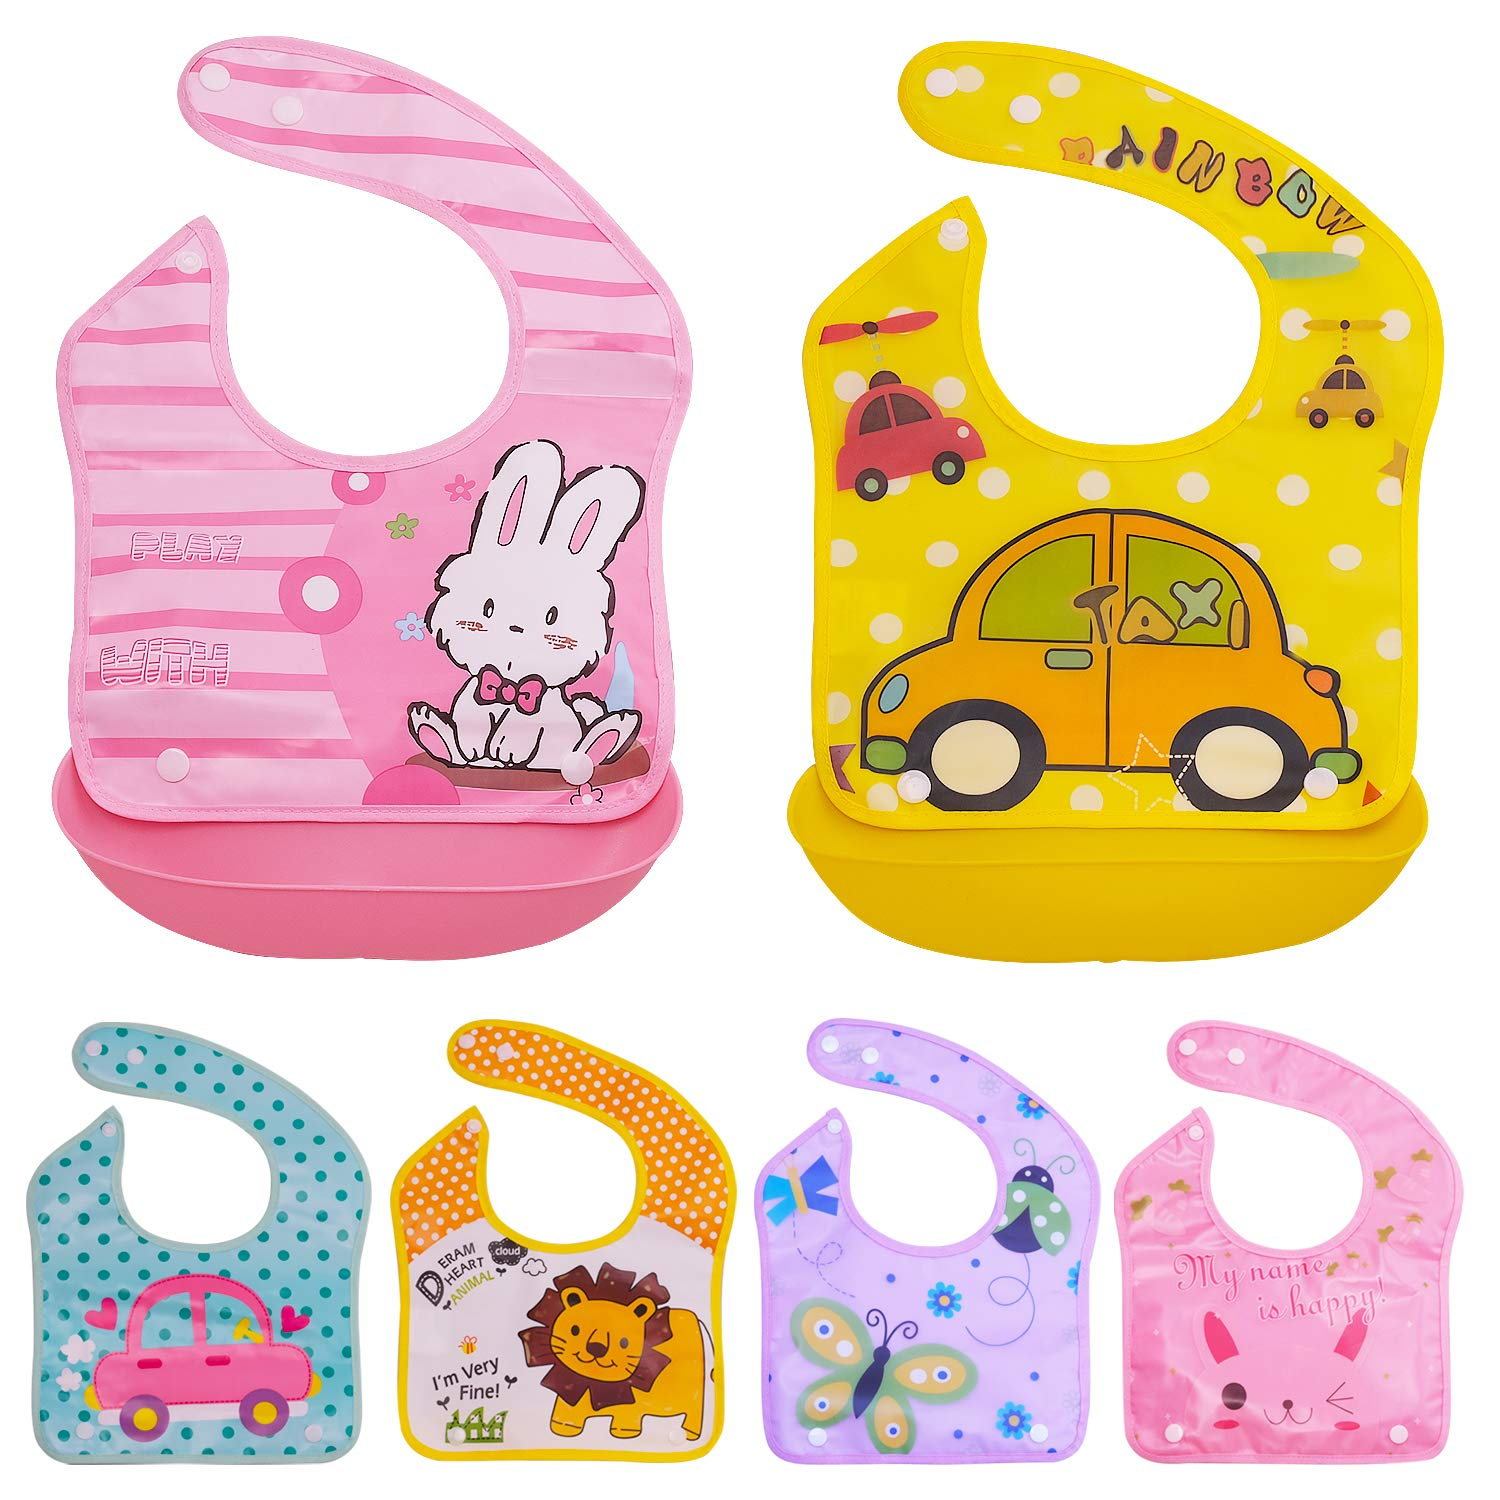 Baby Bibs with Soft Plastic Food Catcher - Set of 6 Bibs and 2 Trays - Waterproof, Reusable and Washable - Drool and Feeding Bib for Babies, Toddlers, Infants, Newborns - Set 6